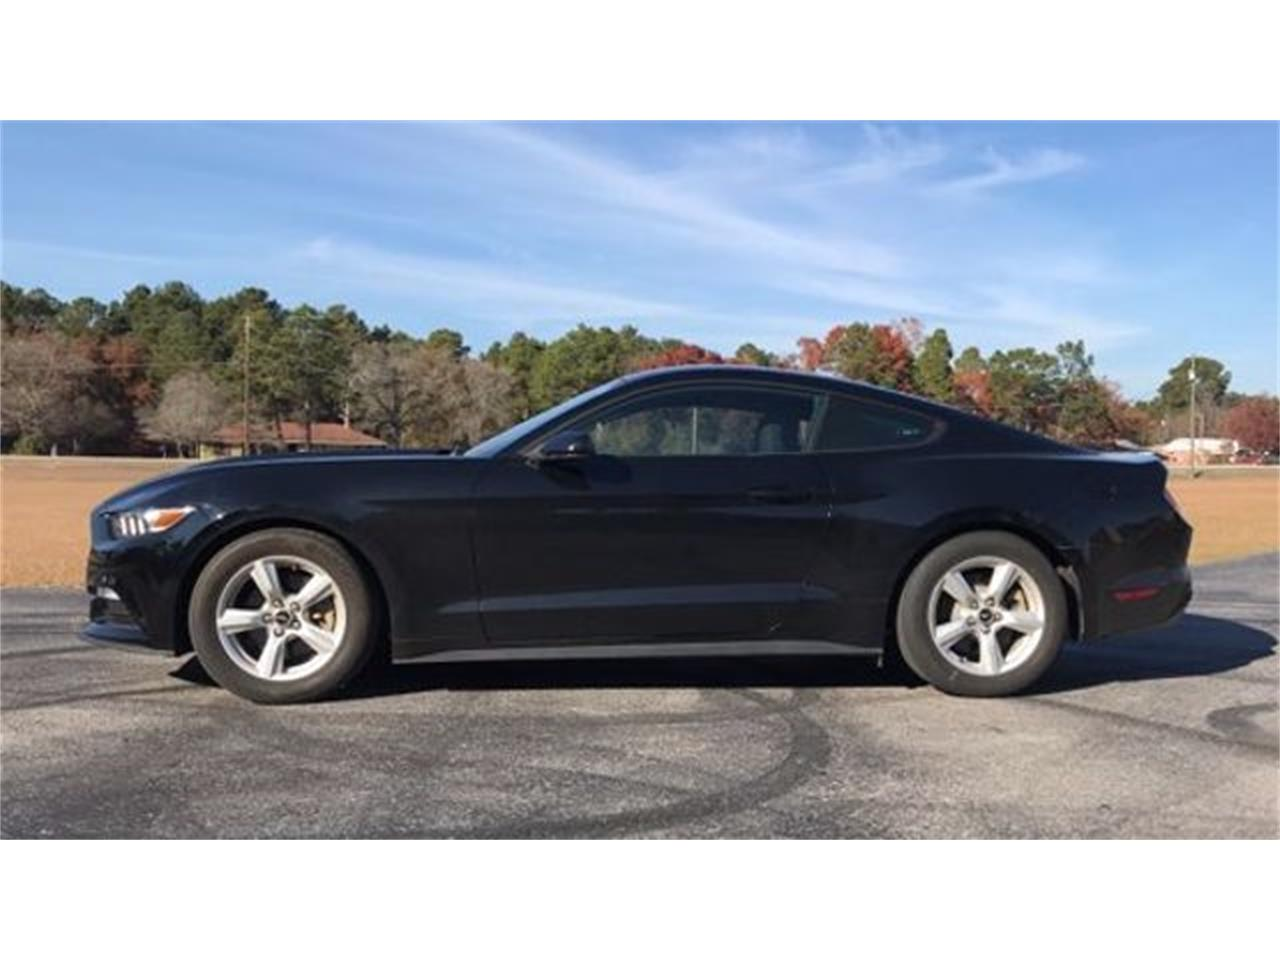 Large Picture of '16 Ford Mustang located in Hope Mills North Carolina - MFZO